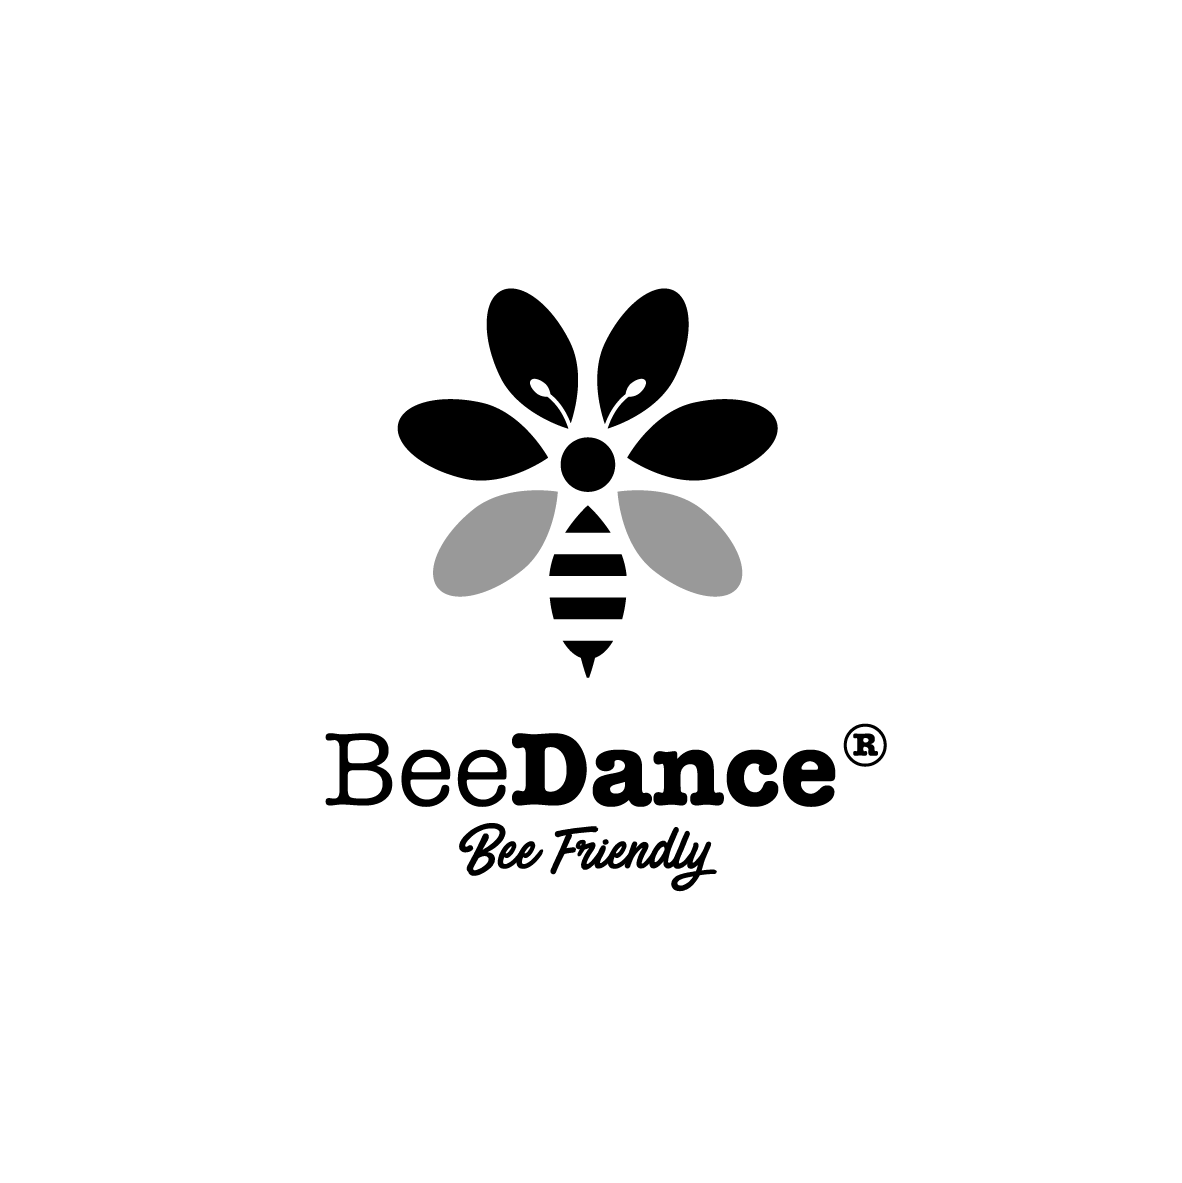 Beedance logo black